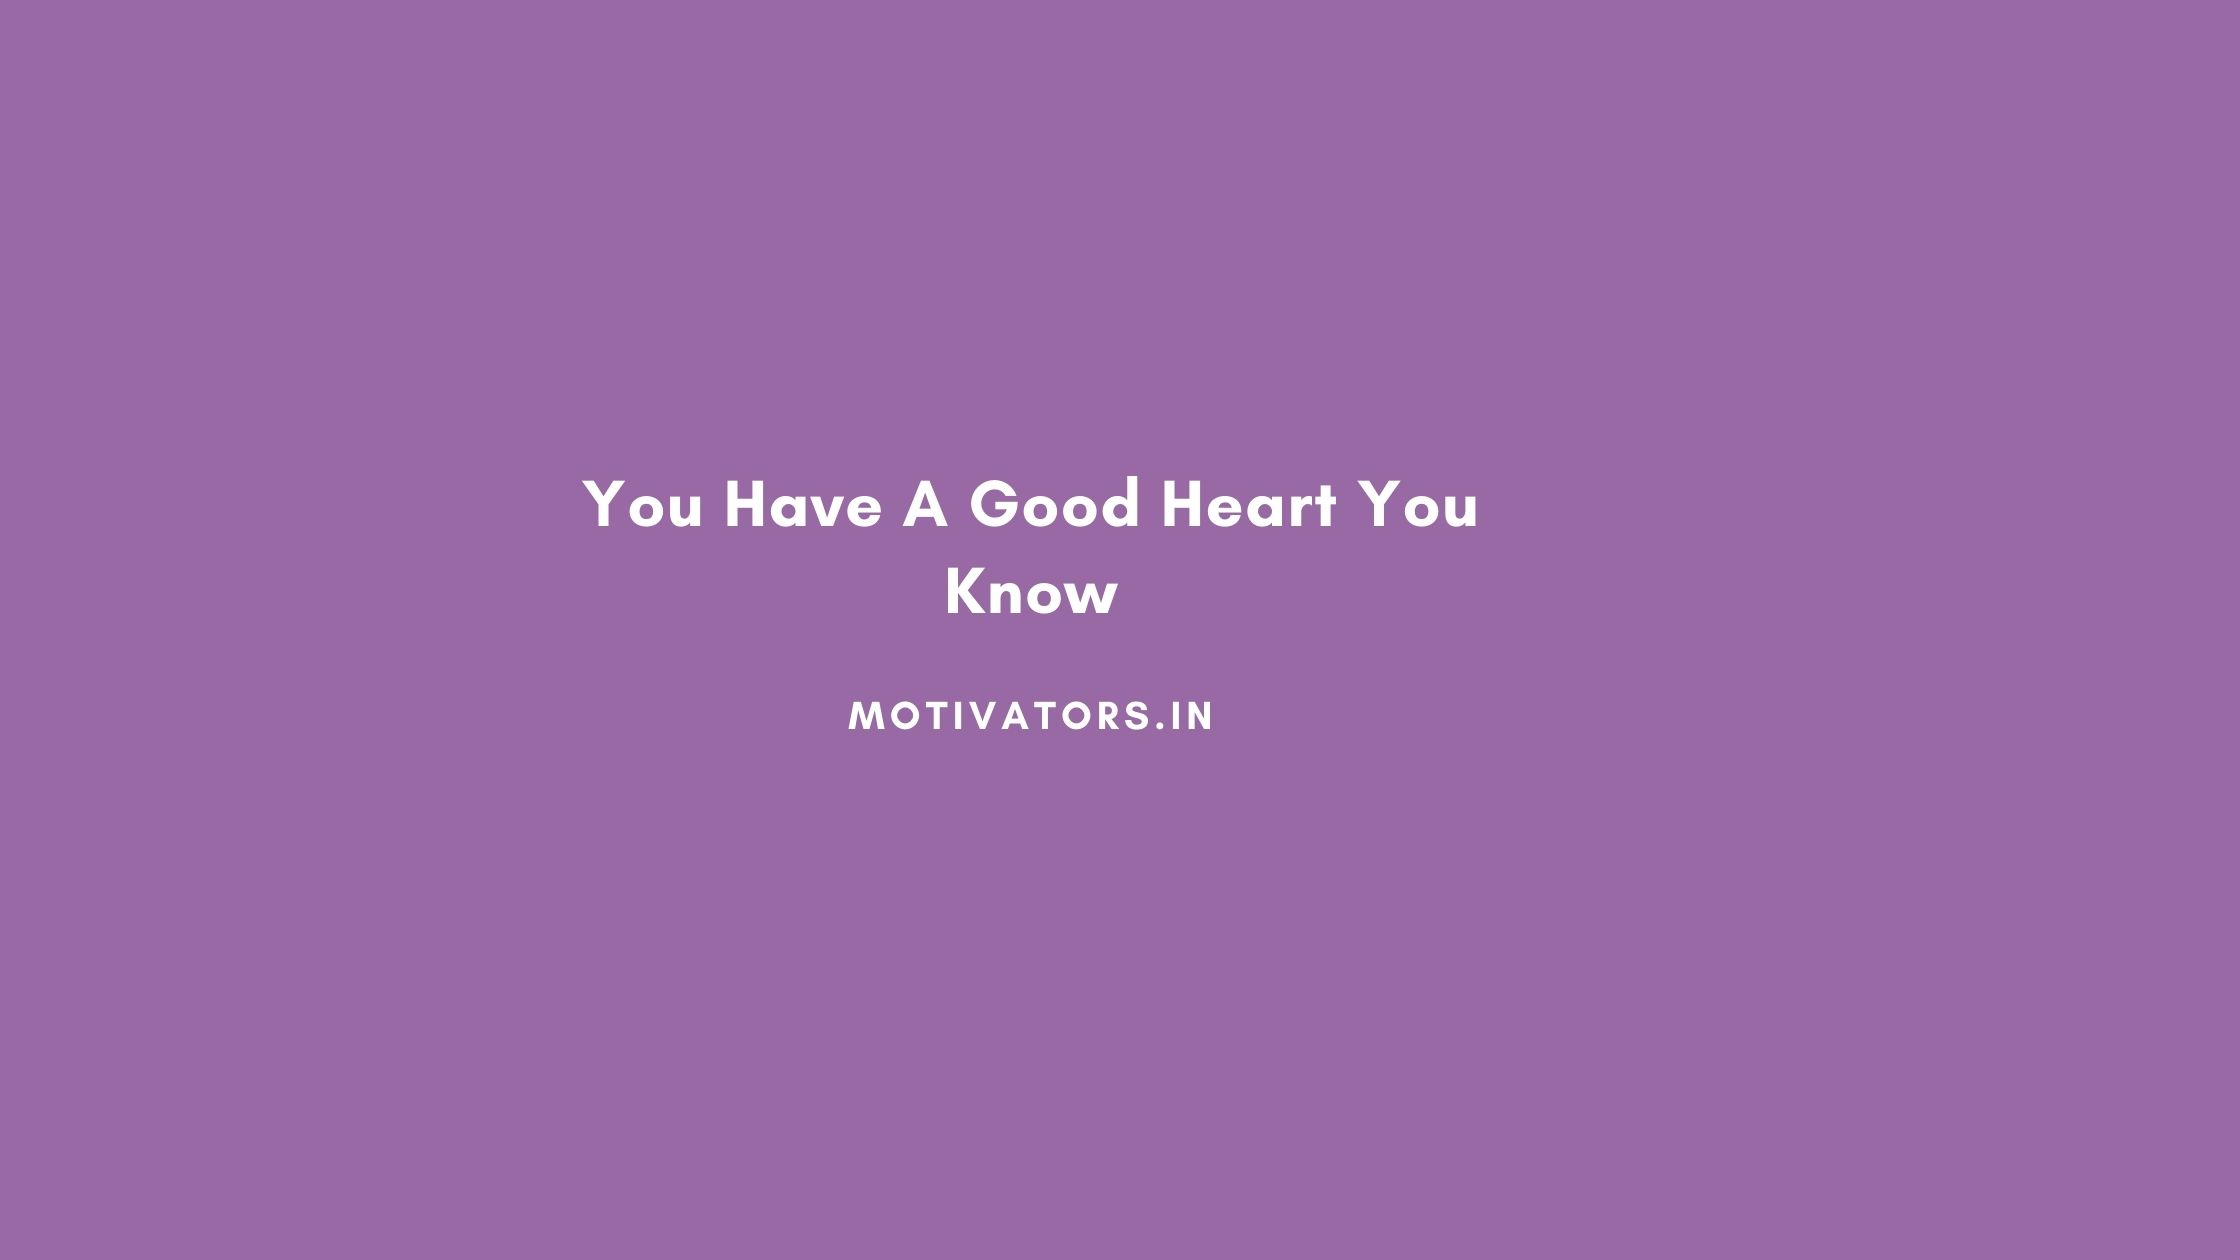 You Have A Good Heart You Know